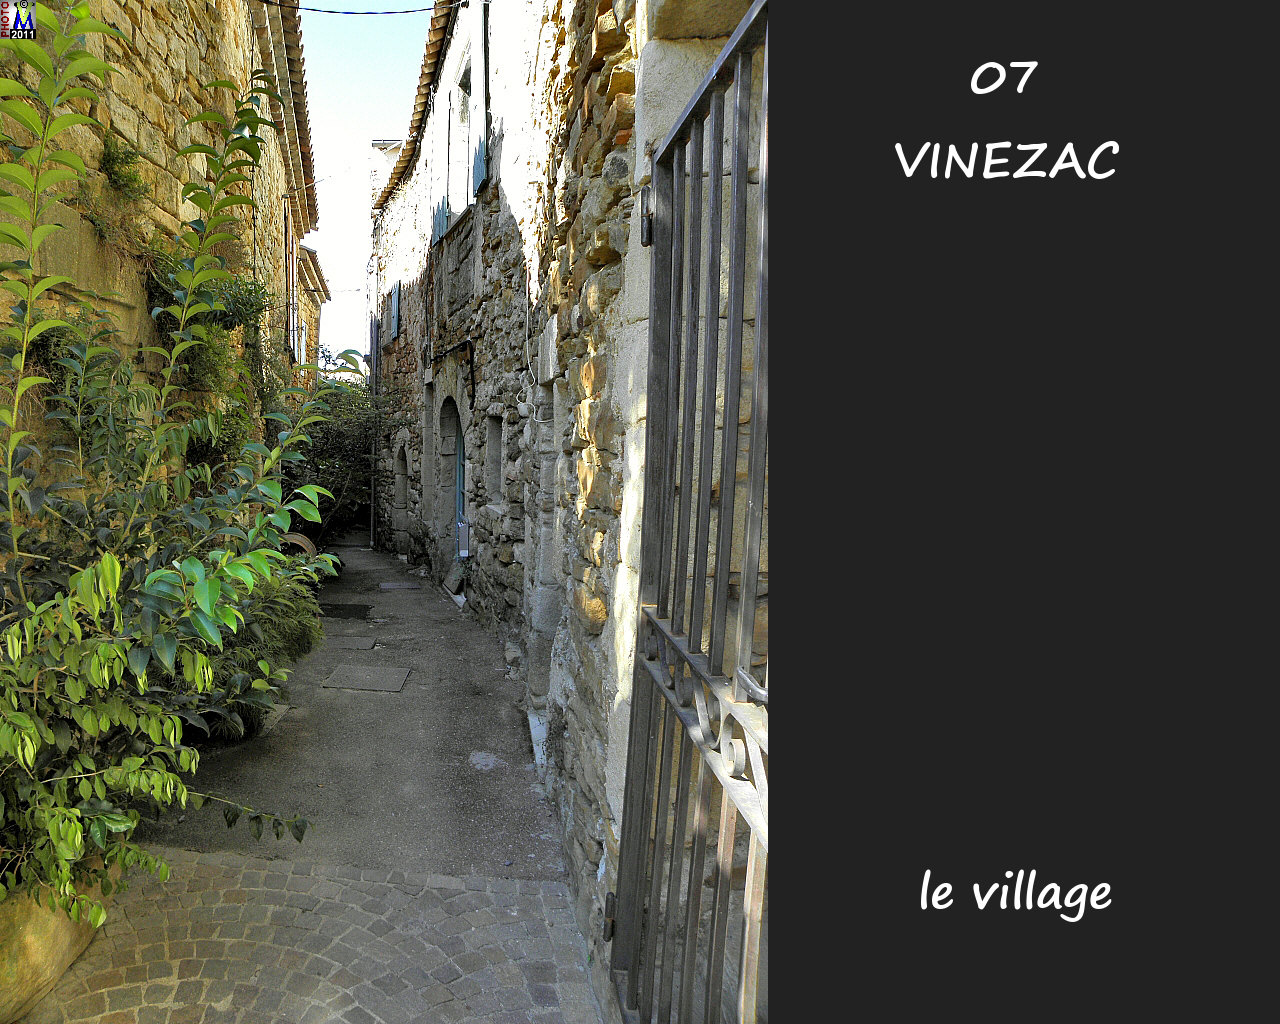 07VINEZAC_village_122.jpg